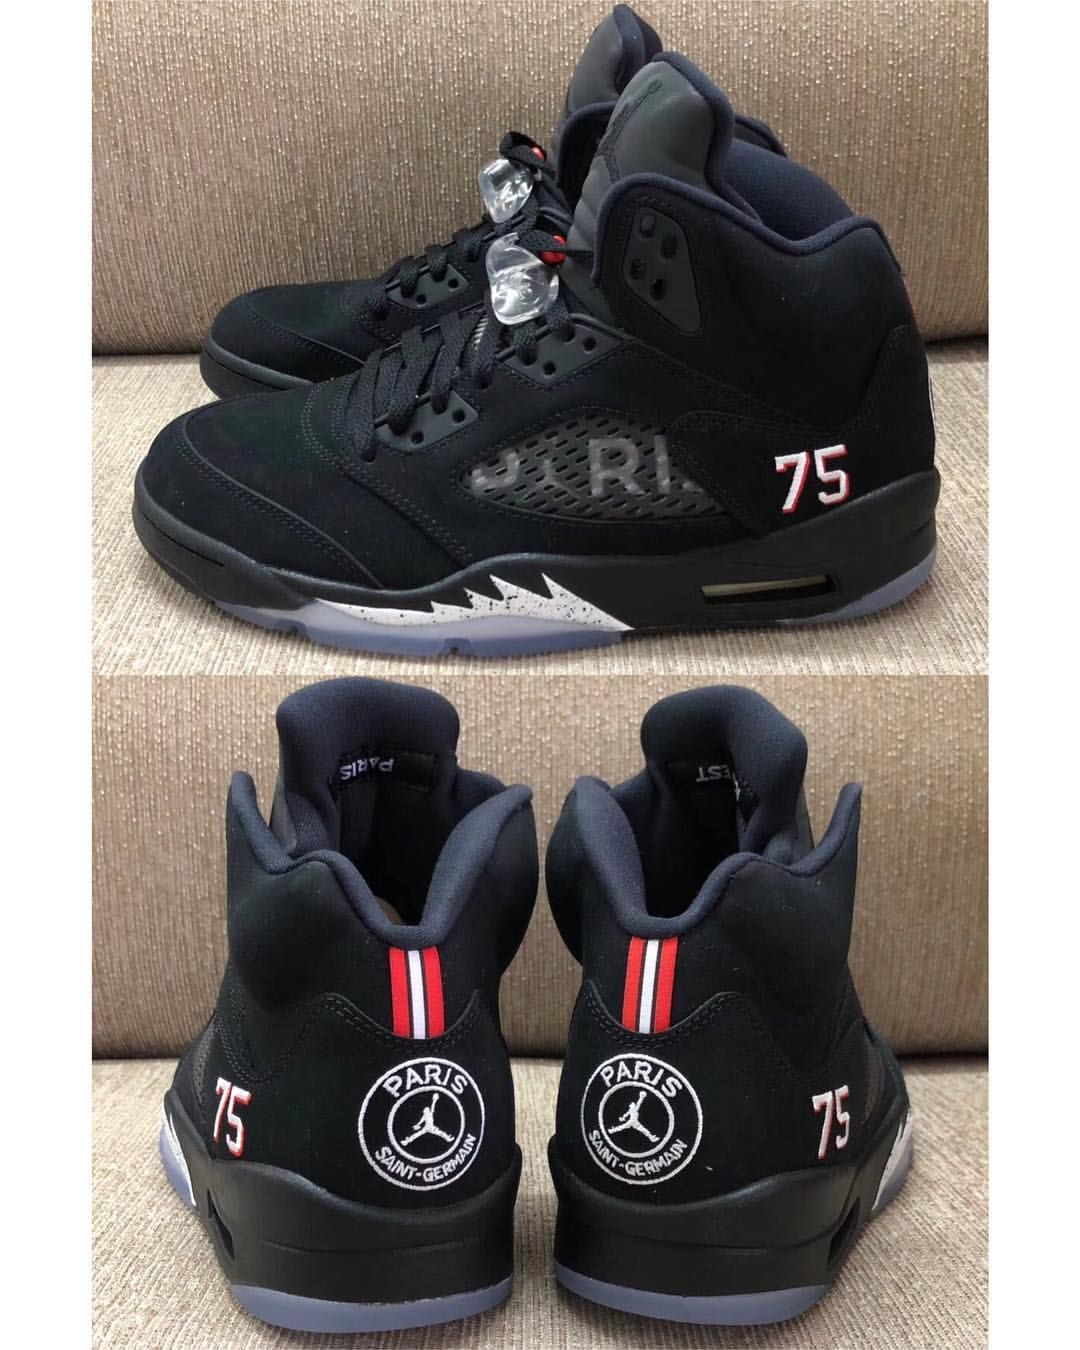 3d8b7dd97efa07 ANOTHER LOOK  2018 Air Jordan Retro 5  PSG Will have release info shortly